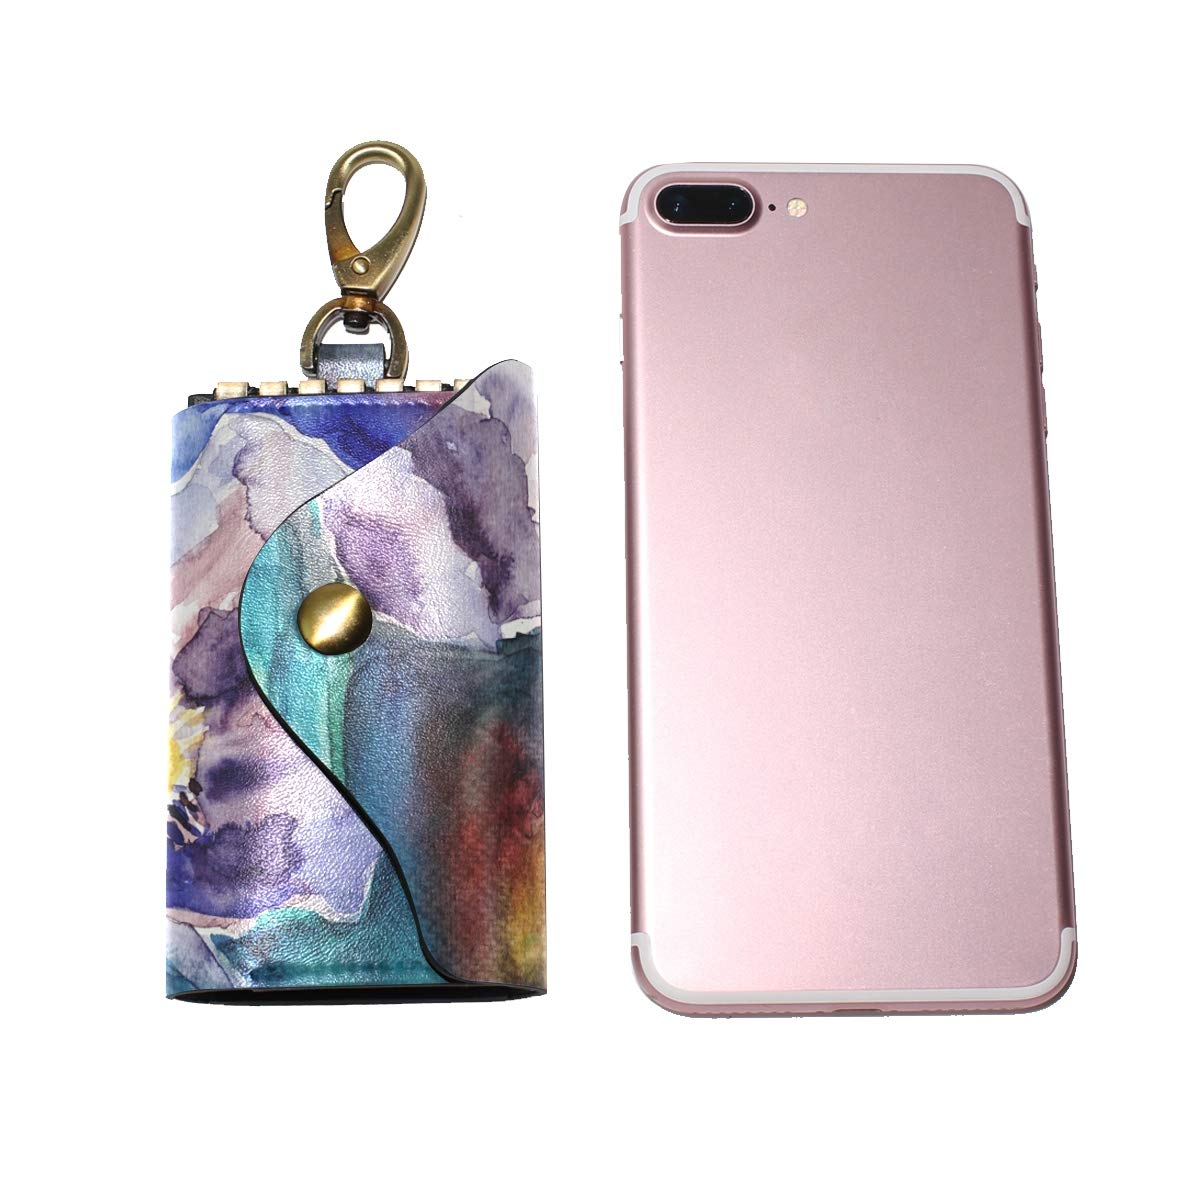 KEAKIA Flowers Painting Leather Key Case Wallets Tri-fold Key Holder Keychains with 6 Hooks 2 Slot Snap Closure for Men Women